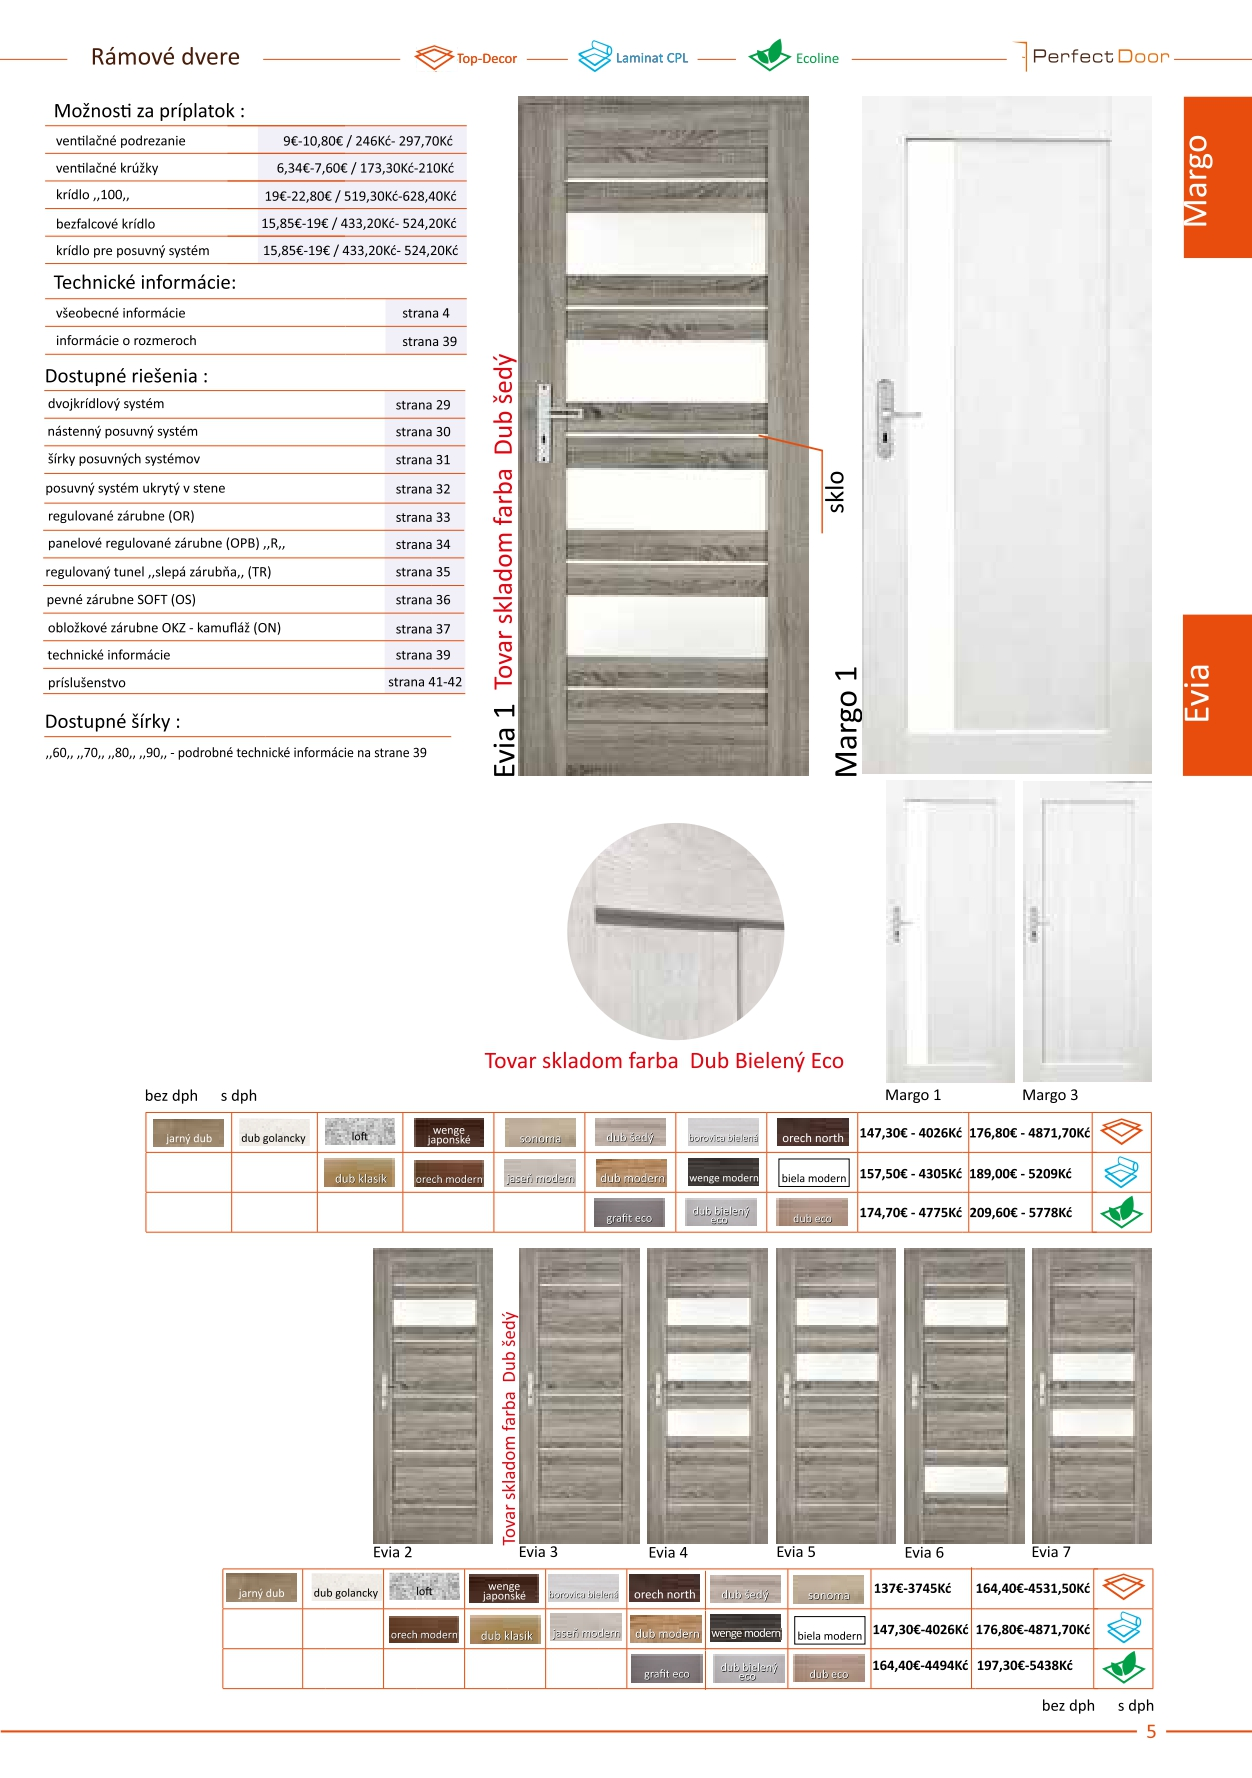 Perfectdoor katalog  1 2019 pages-to-jpg-0005